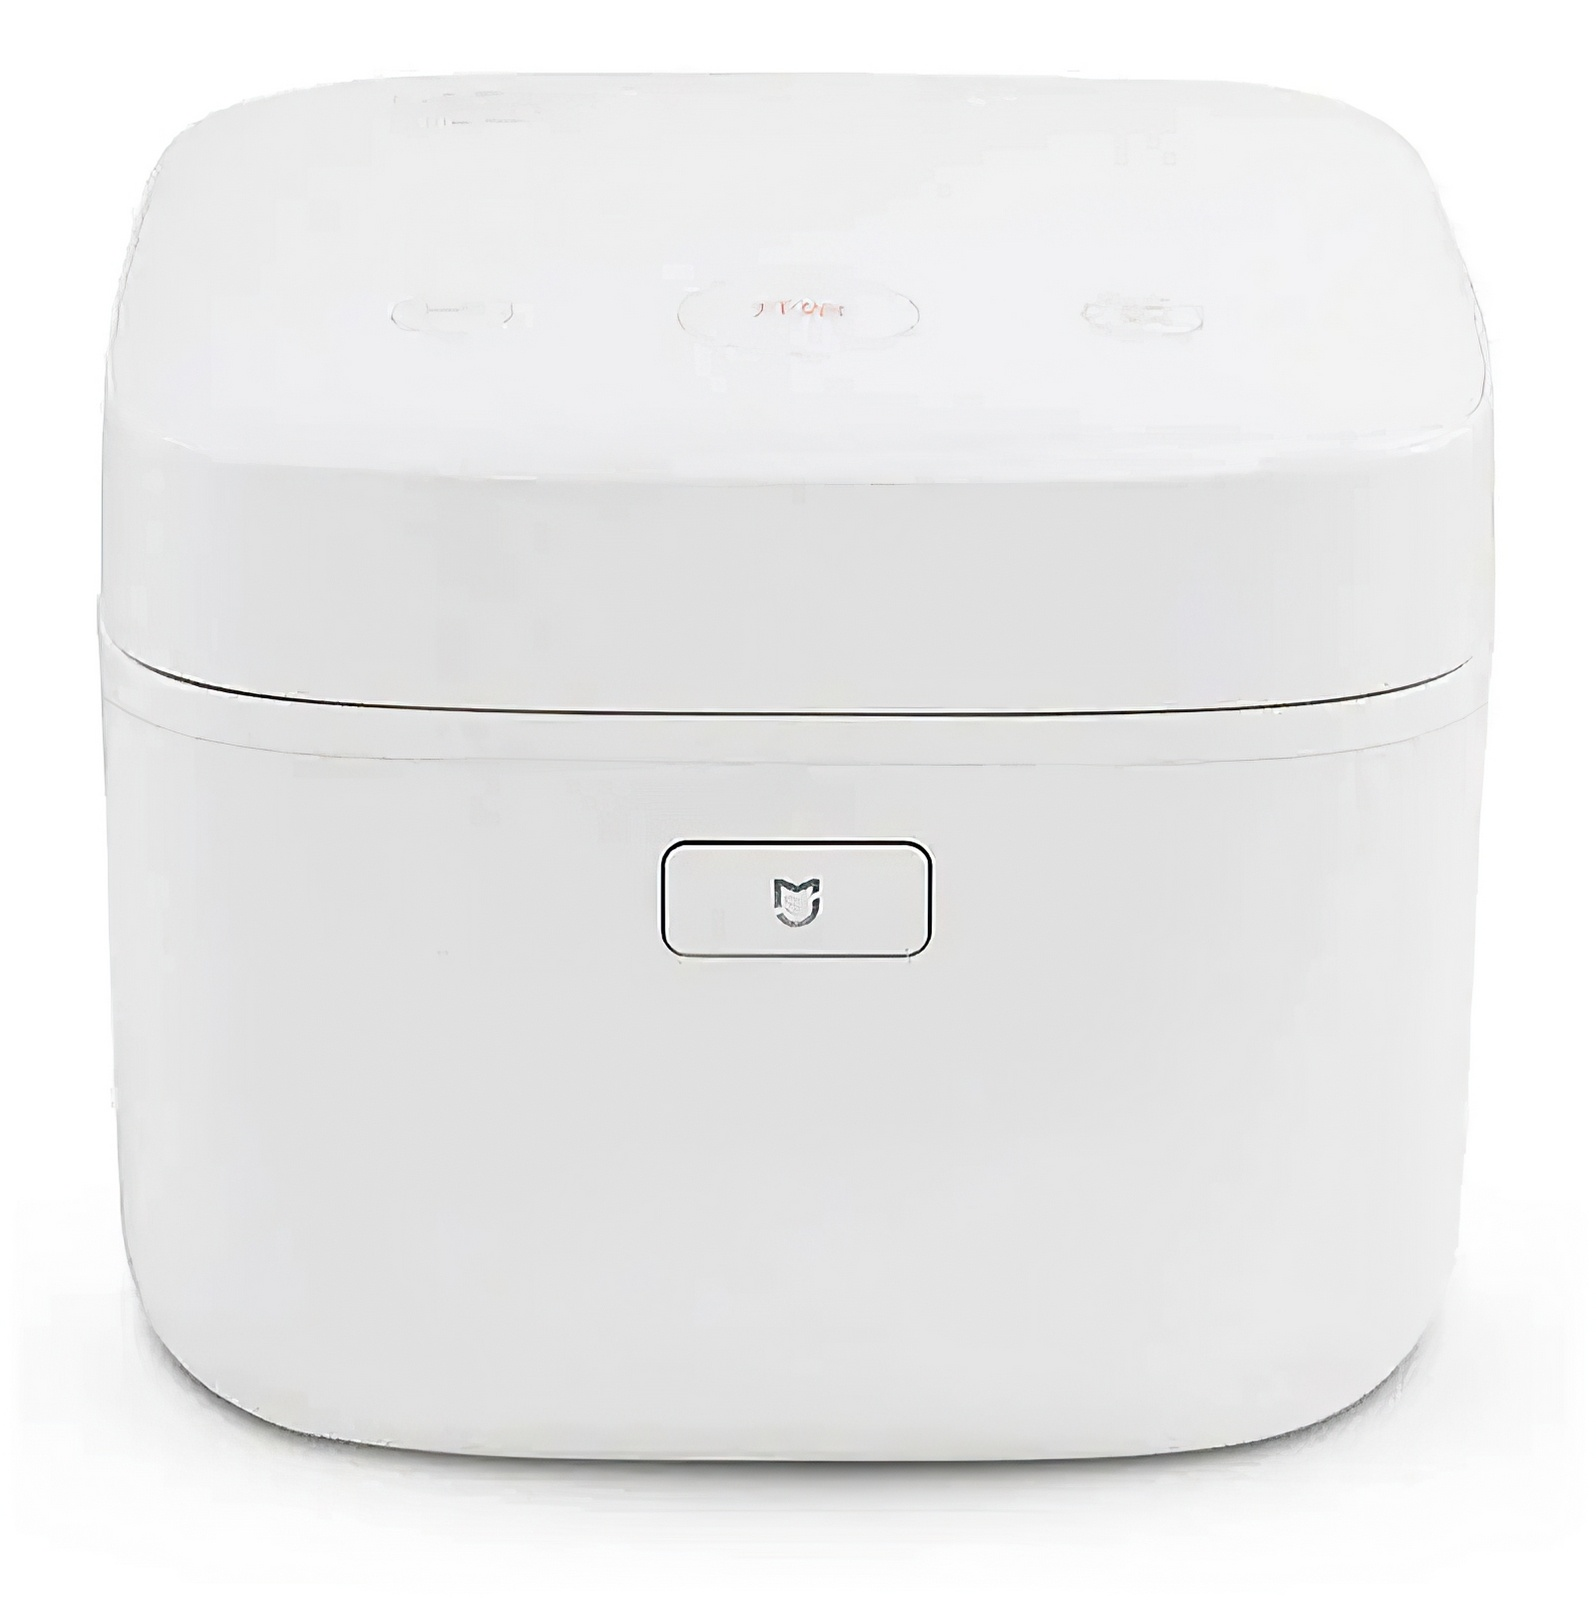 Xiaomi Mijia Induction Heating Rice Cooker 4L 1430W